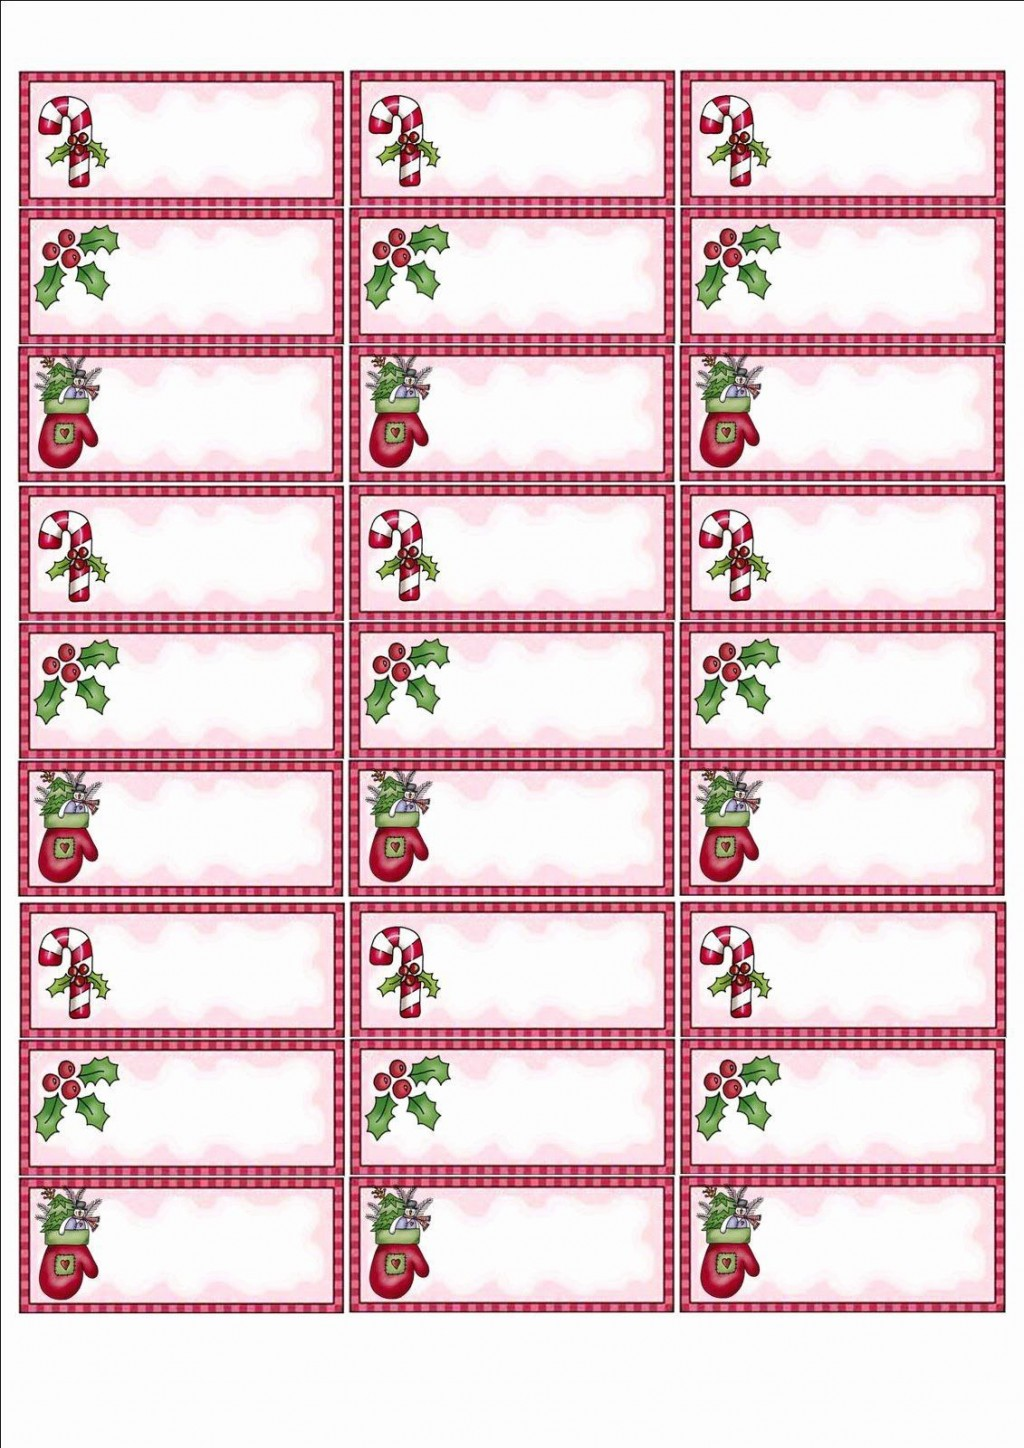 005 Imposing Christma Mailing Label Template Picture  Addres Free Download ReturnLarge